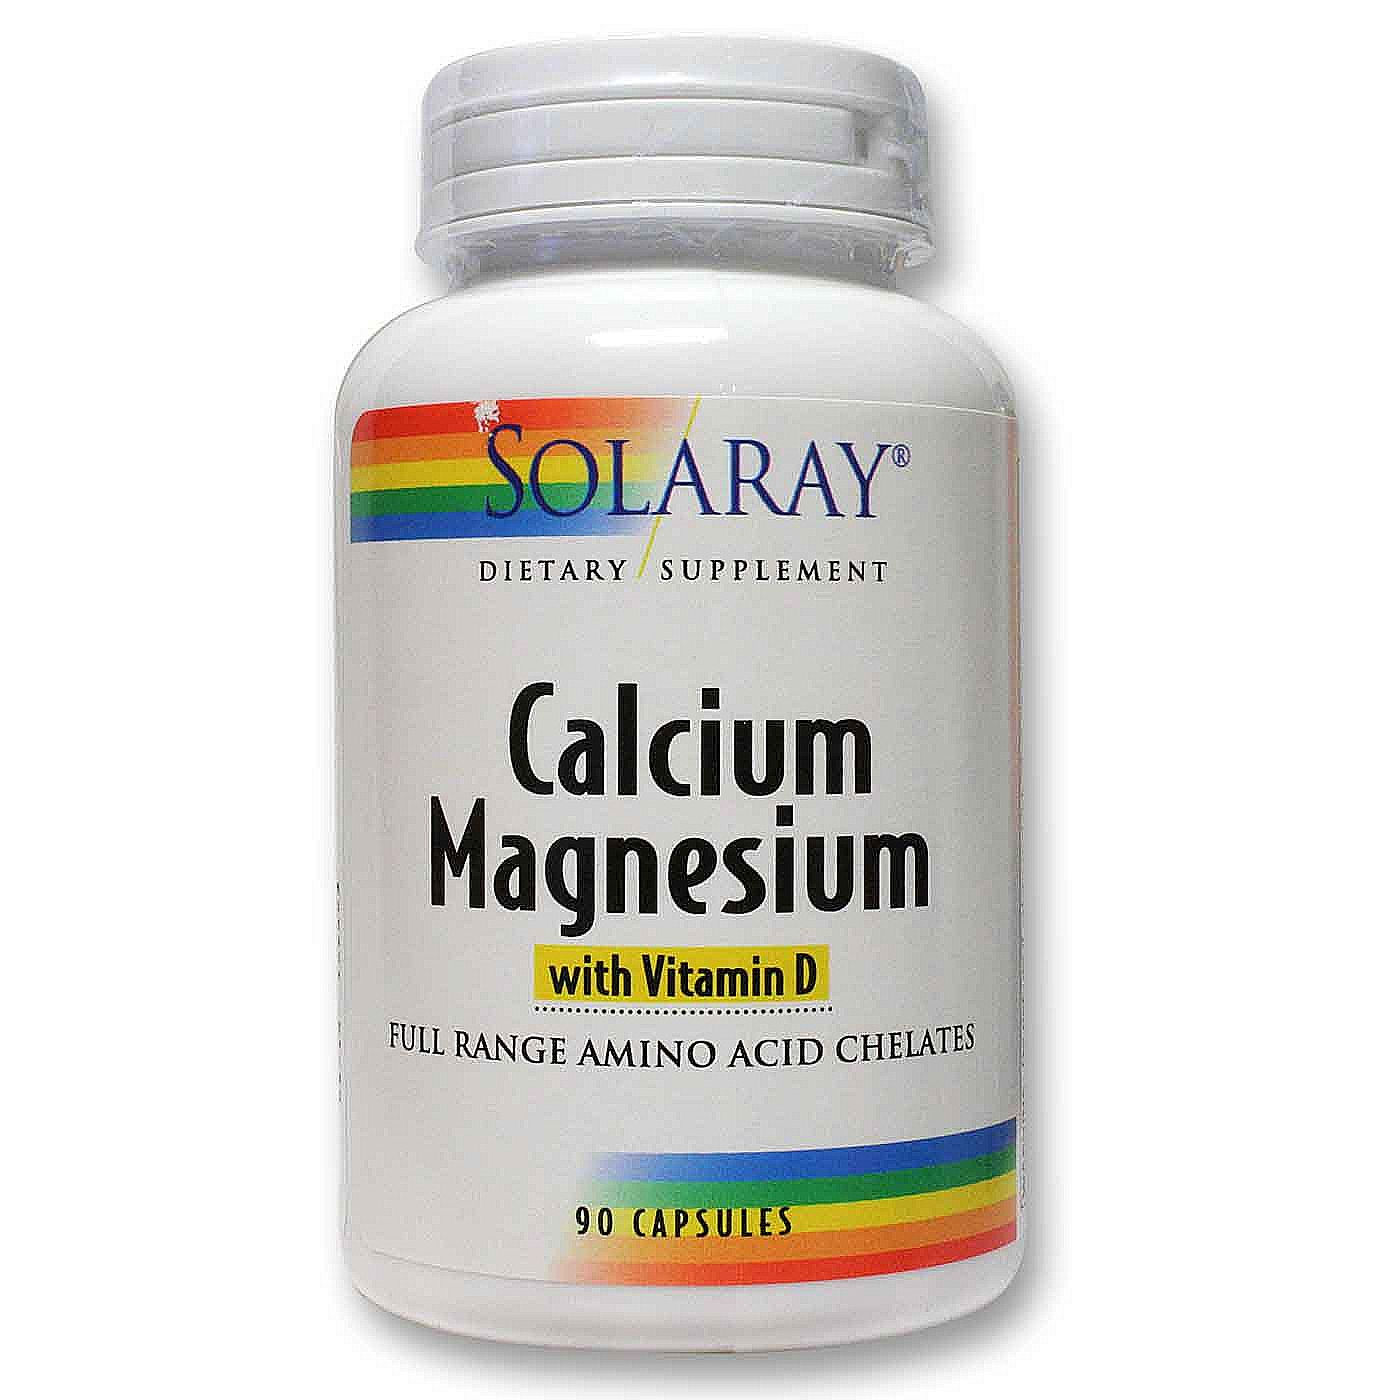 solaray calcium magnesium with vitamin d 90 capsules. Black Bedroom Furniture Sets. Home Design Ideas